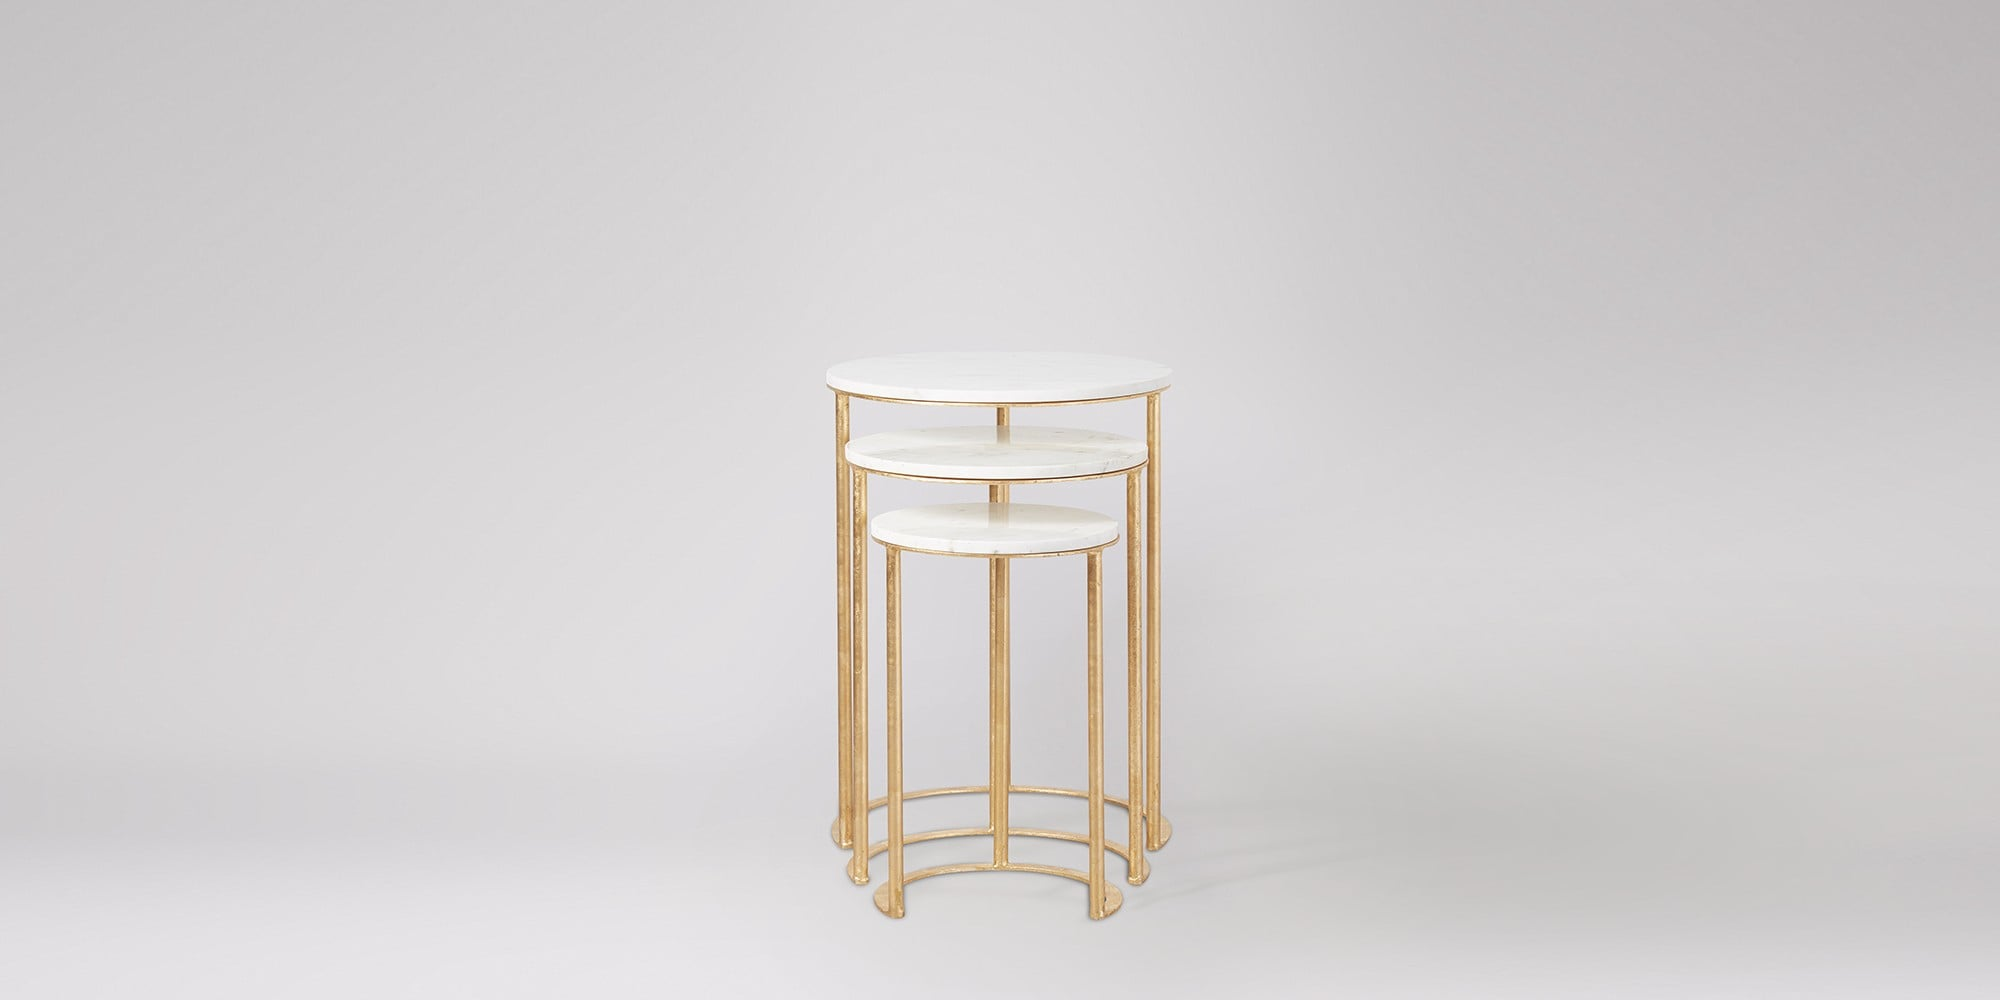 side tables end nesting swoon cabo sidtabset marbgoldleaf productpage carousel desktop linon galway accent table white convertible bar cabinet round kitchen set small living room